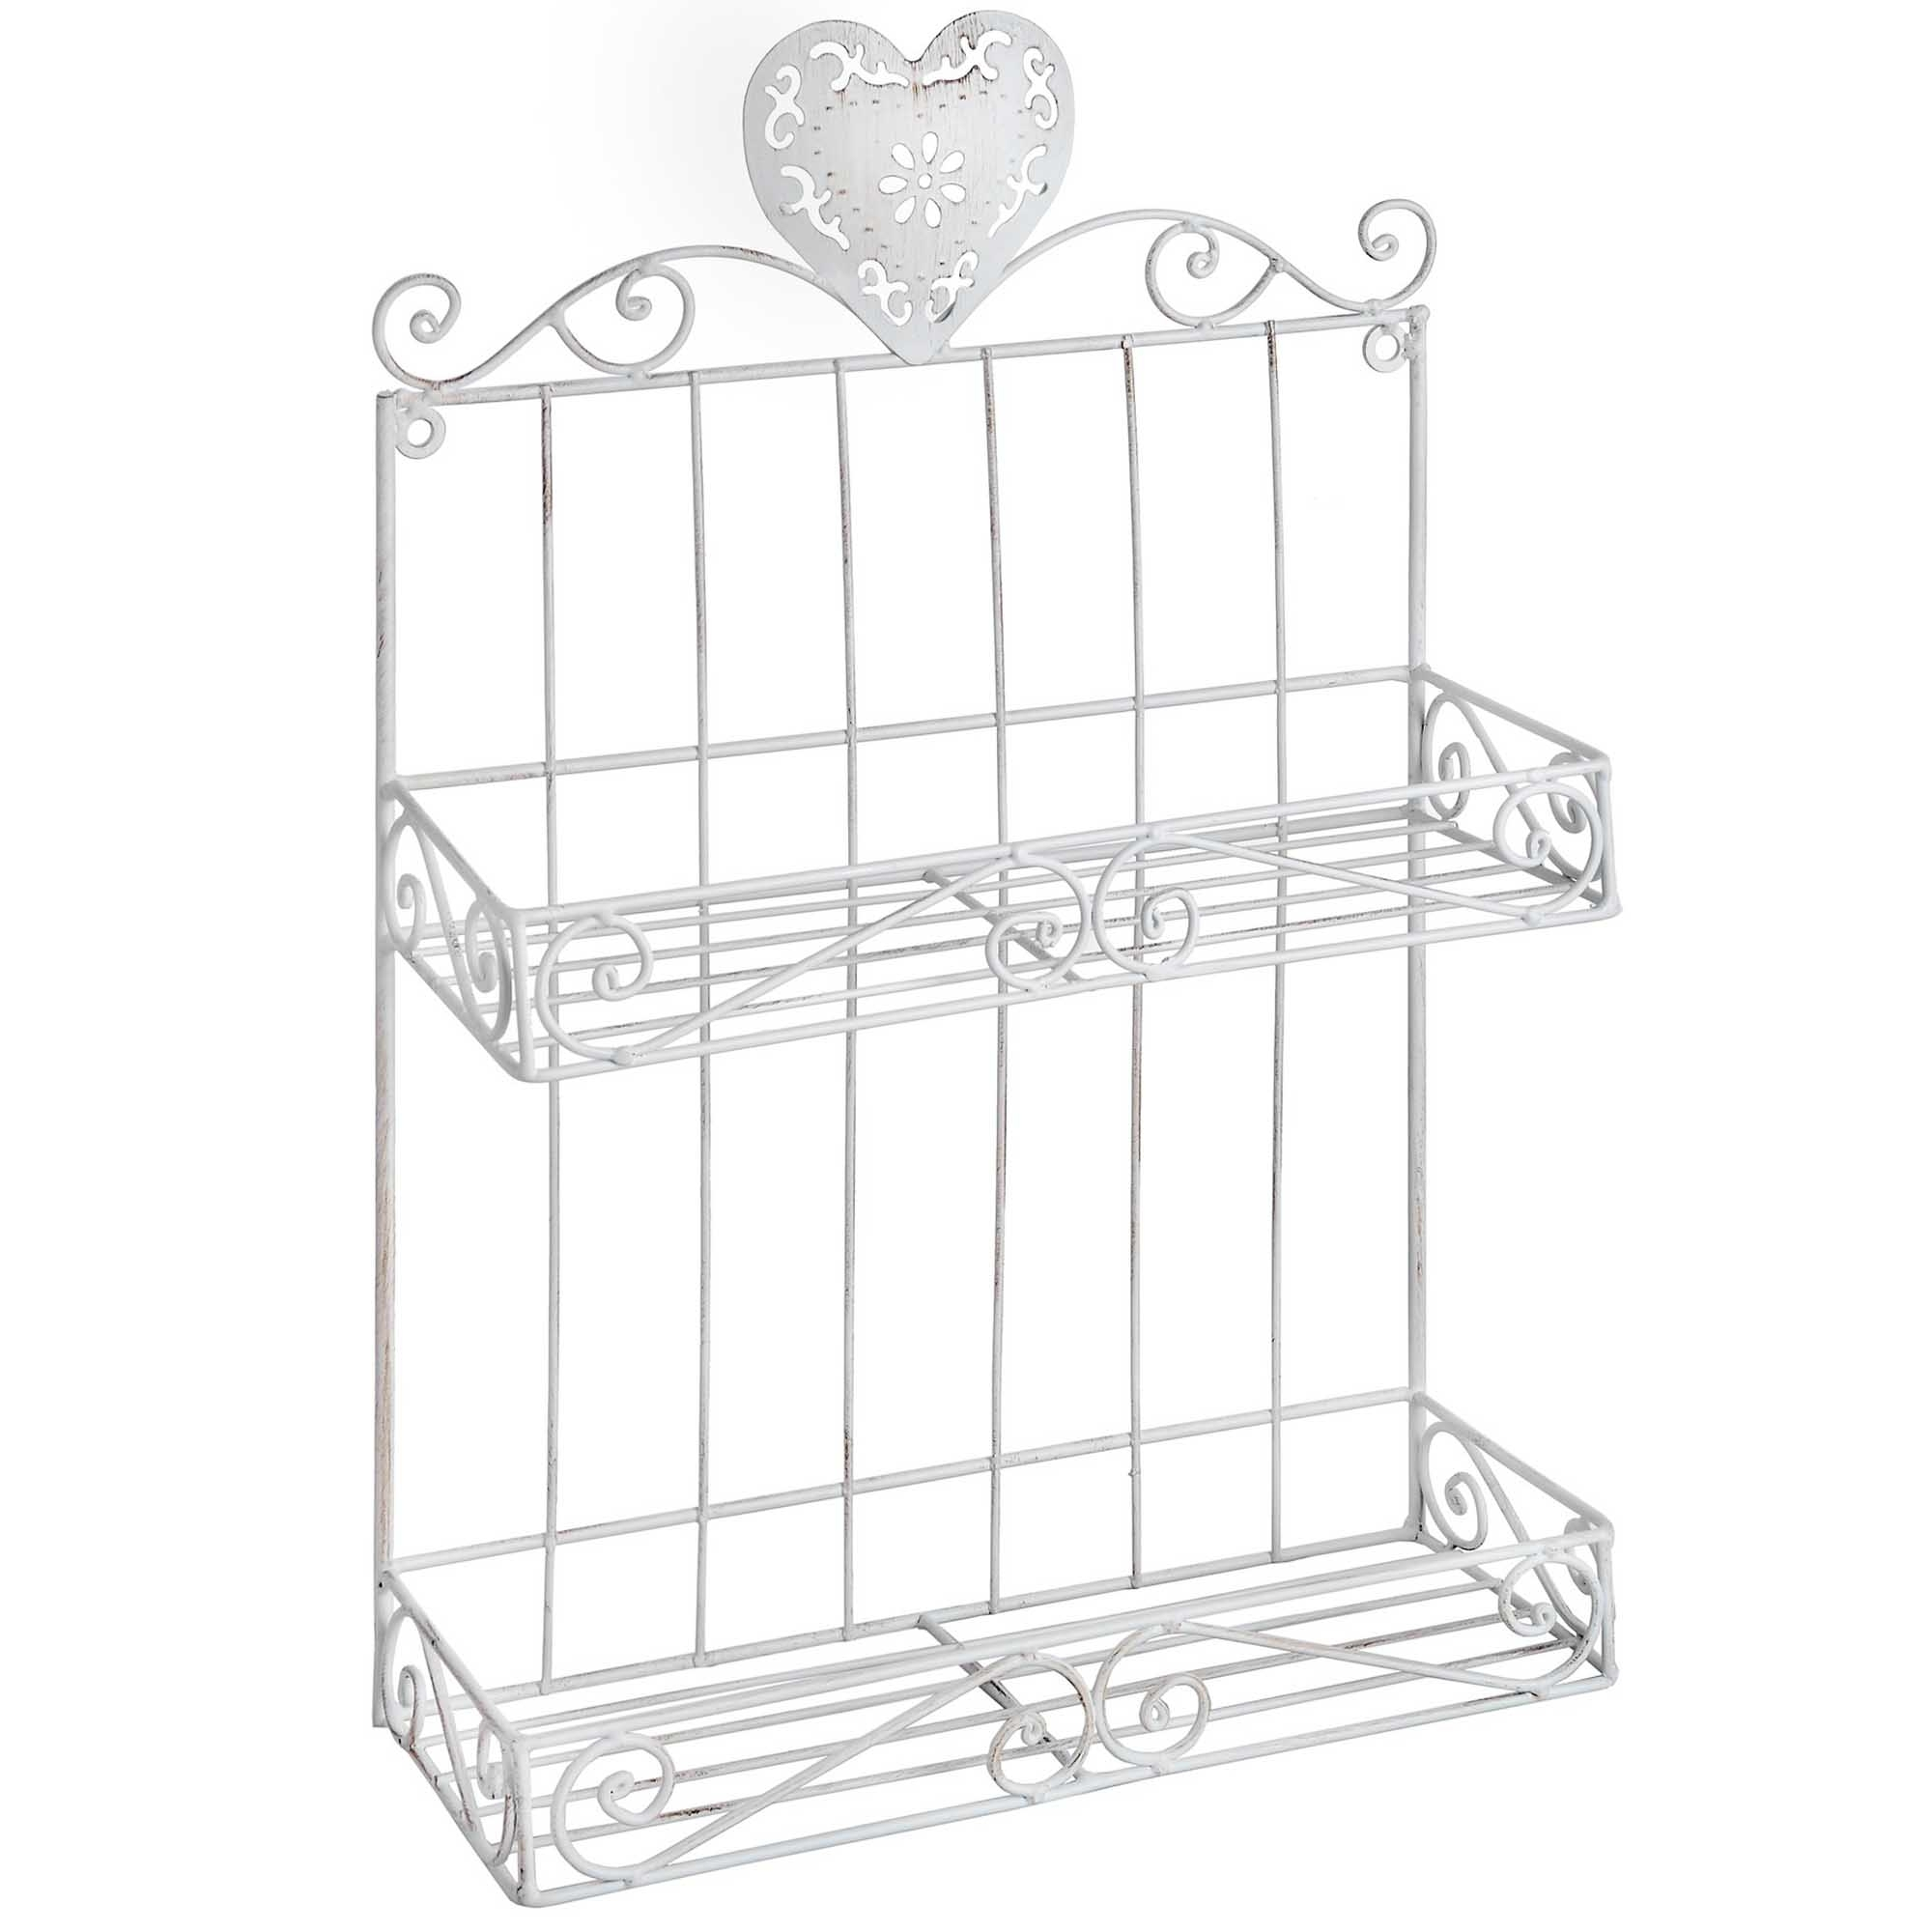 French Inspired Bathroom Accessories. Image Result For French Inspired Bathroom Accessories